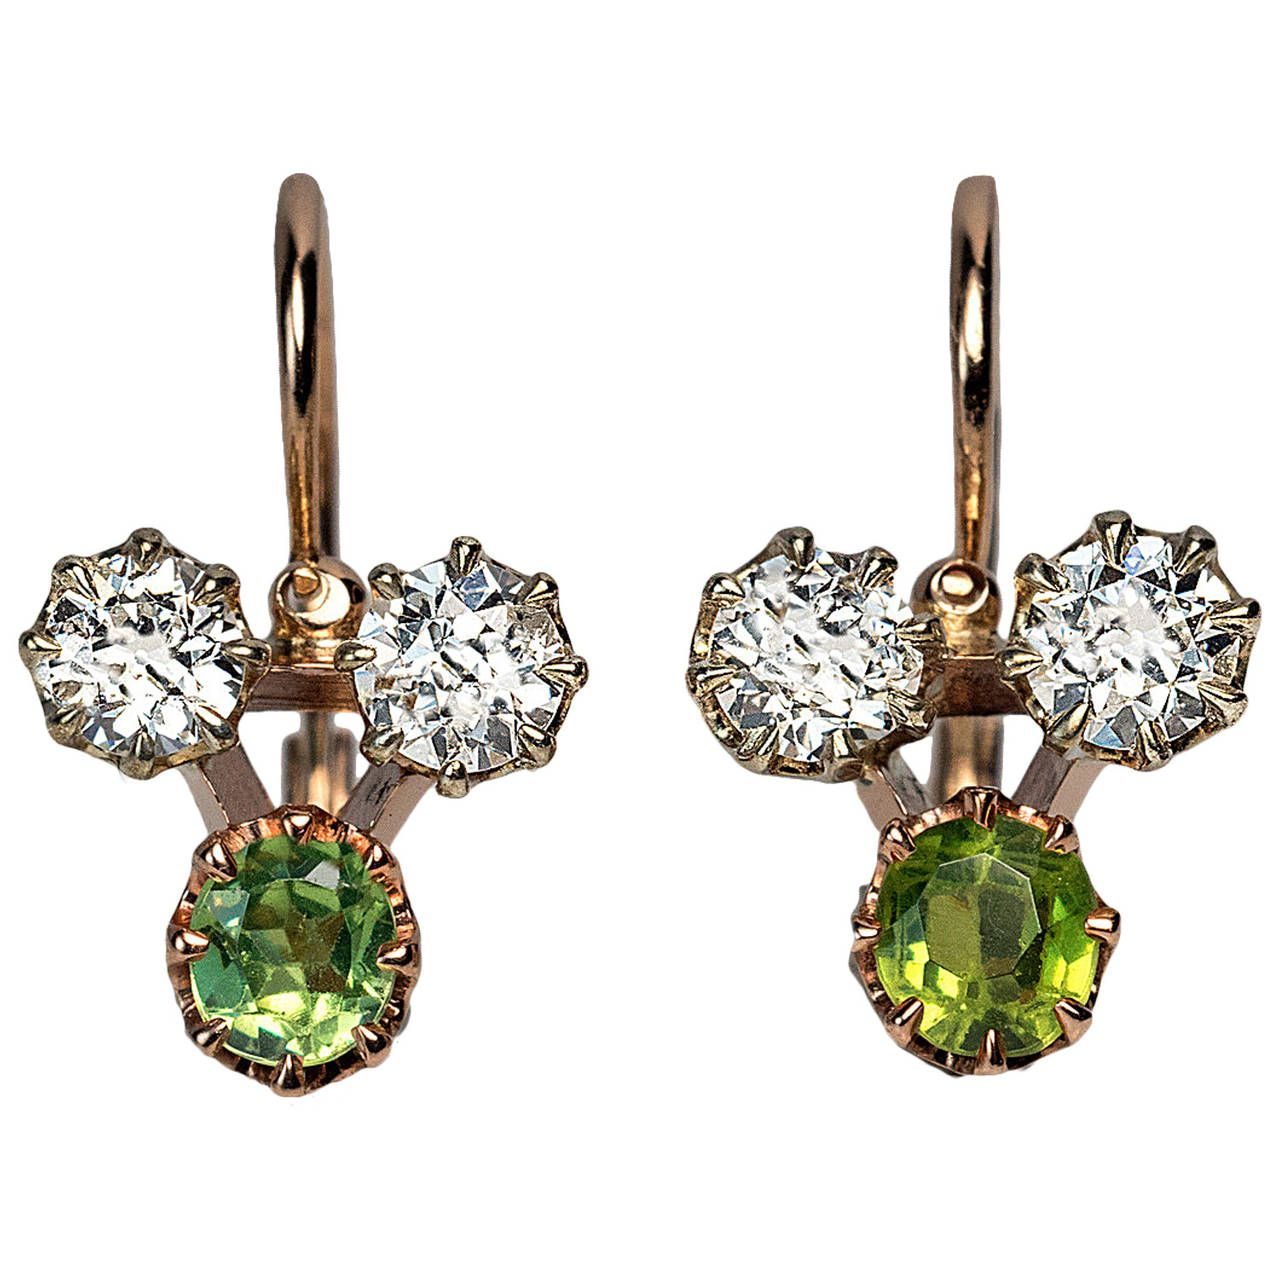 Antique Russian Demantoid Diamond Gold Earrings. Made in Moscow between 1899 and 1908 The 14K rose gold earrings are set with four old European cut diamonds and two Russian demantoids.